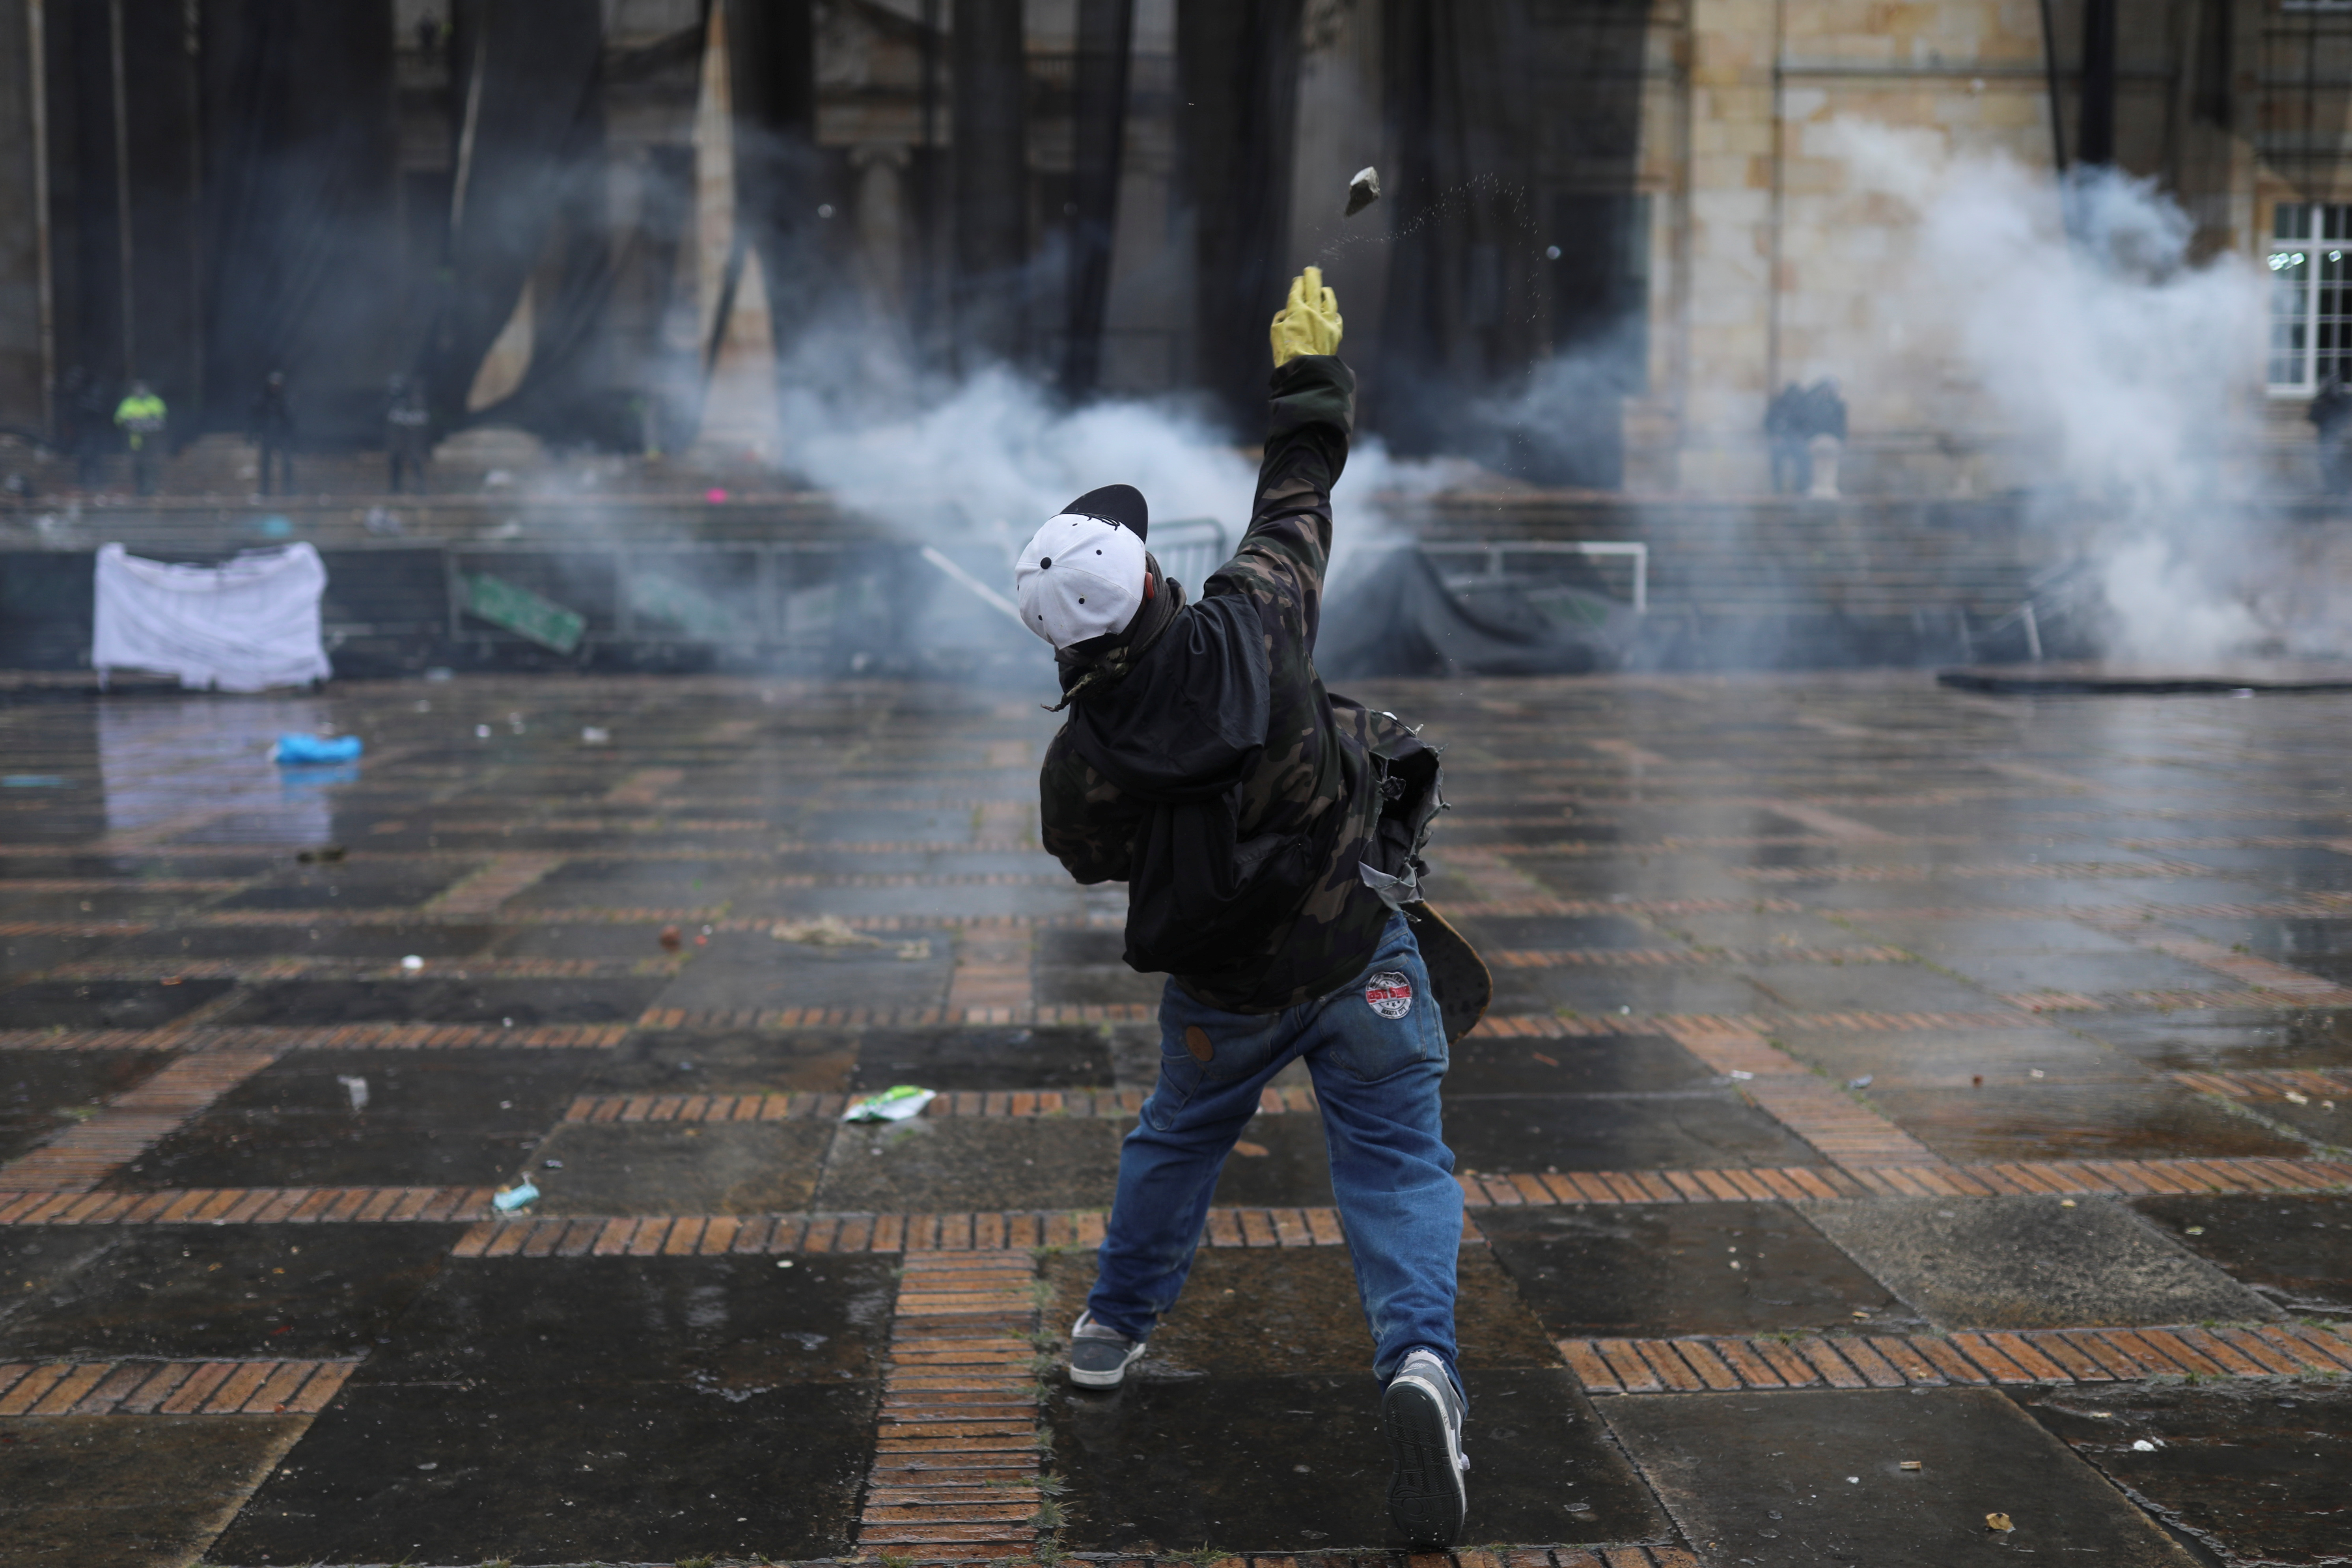 A demonstrator throws an object during a protest against poverty and police violence in Bogota, Colombia, May 5, 2021. REUTERS/Luisa Gonzalez